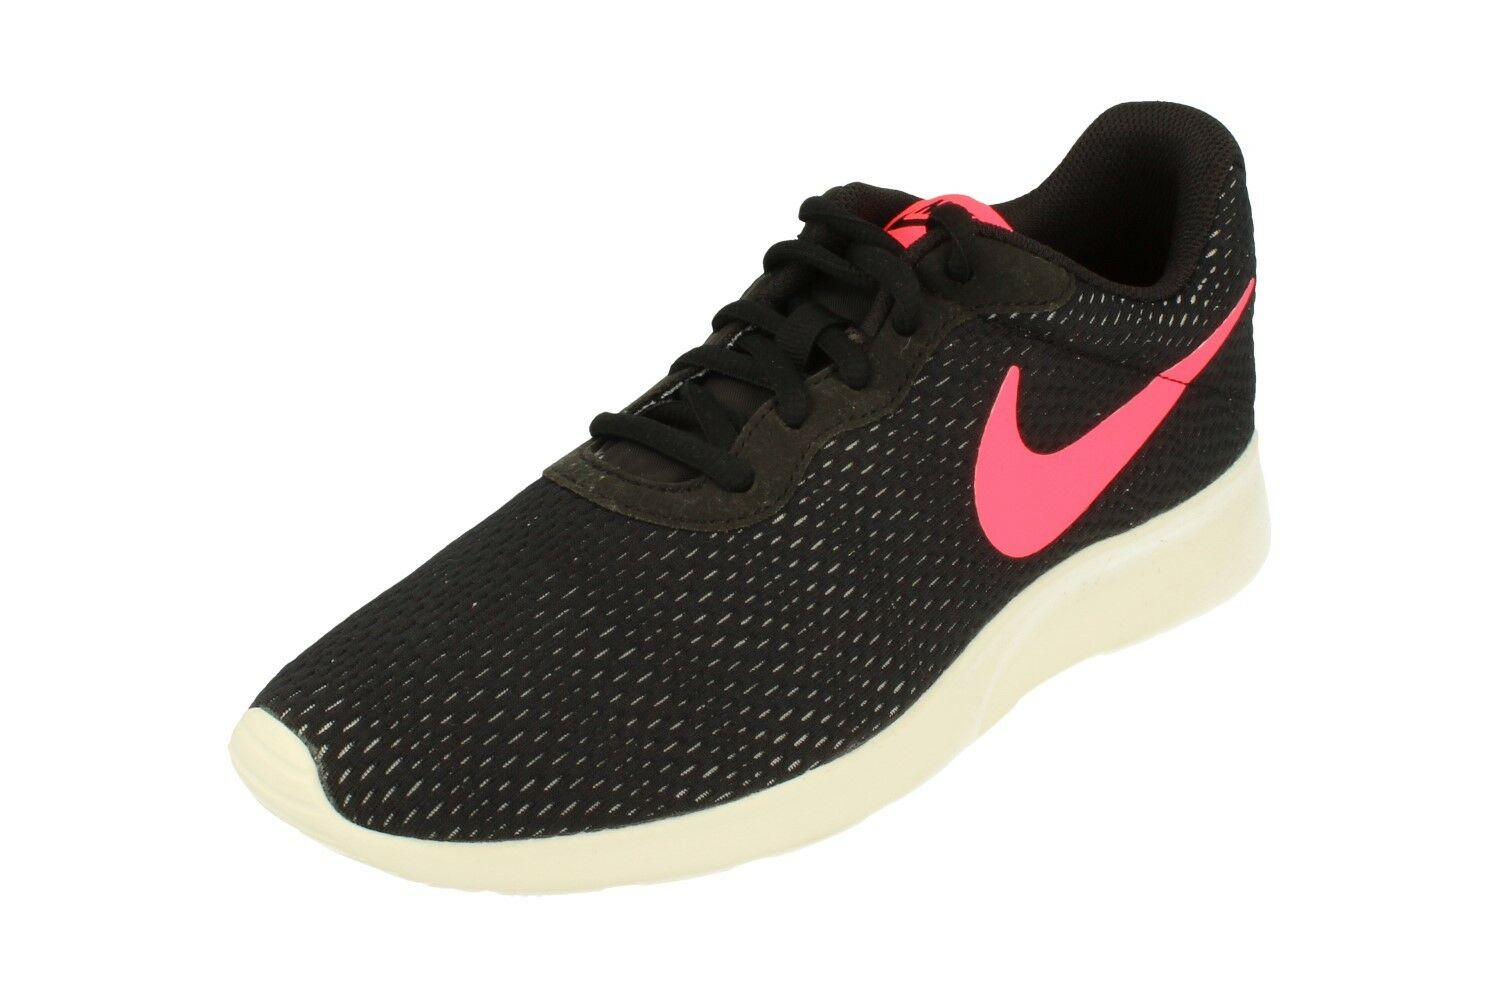 Nike tanjun se  Chaussure  running trainers 844887 Baskets Chaussure  s 005 1a40d9